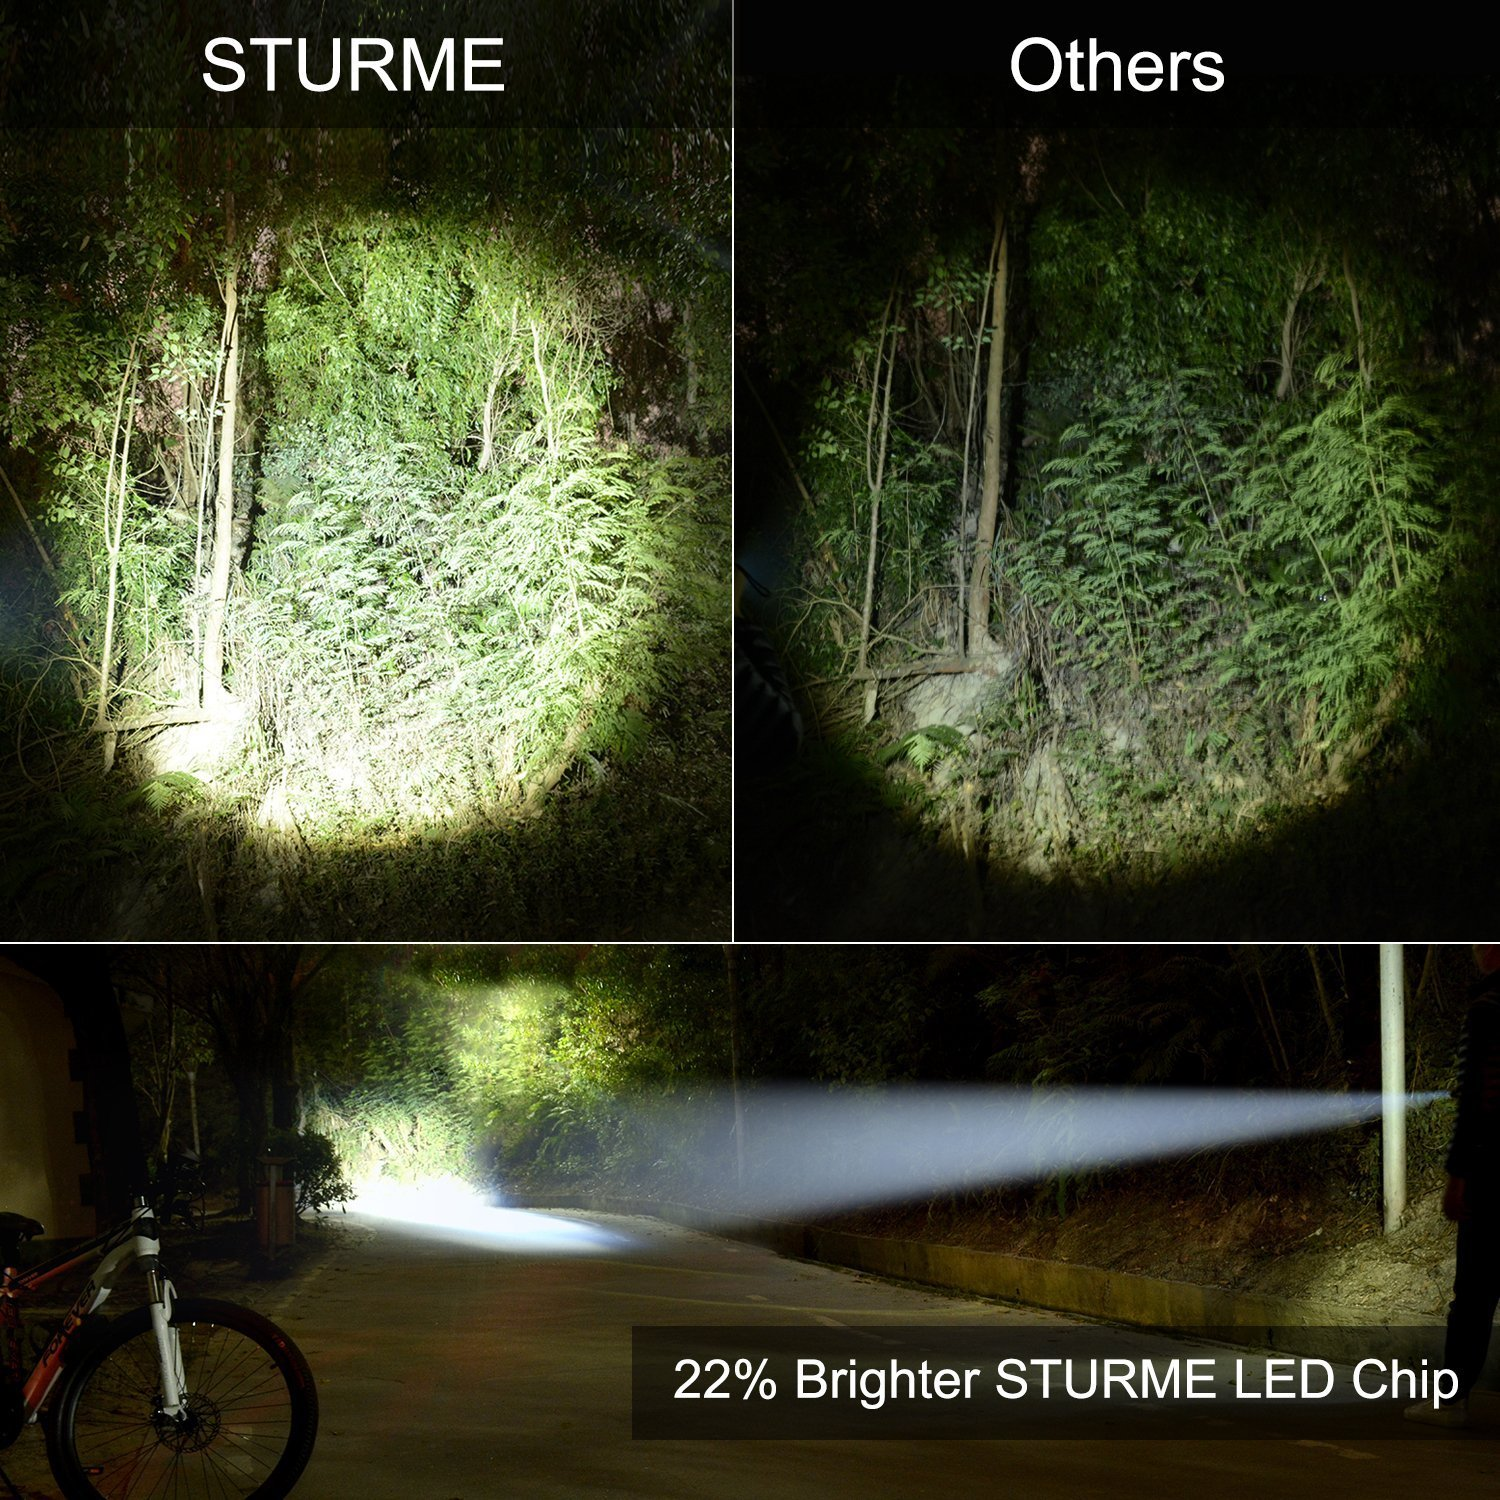 STURME LED Tactical Flashlight Ultra Bright Zoomable, IP65 Water-Resistant, High Lumens CREE LED, Adjustable Focus 5 Modes Waterproof Military Grade Powered Torch Portable Handheld Flashlight